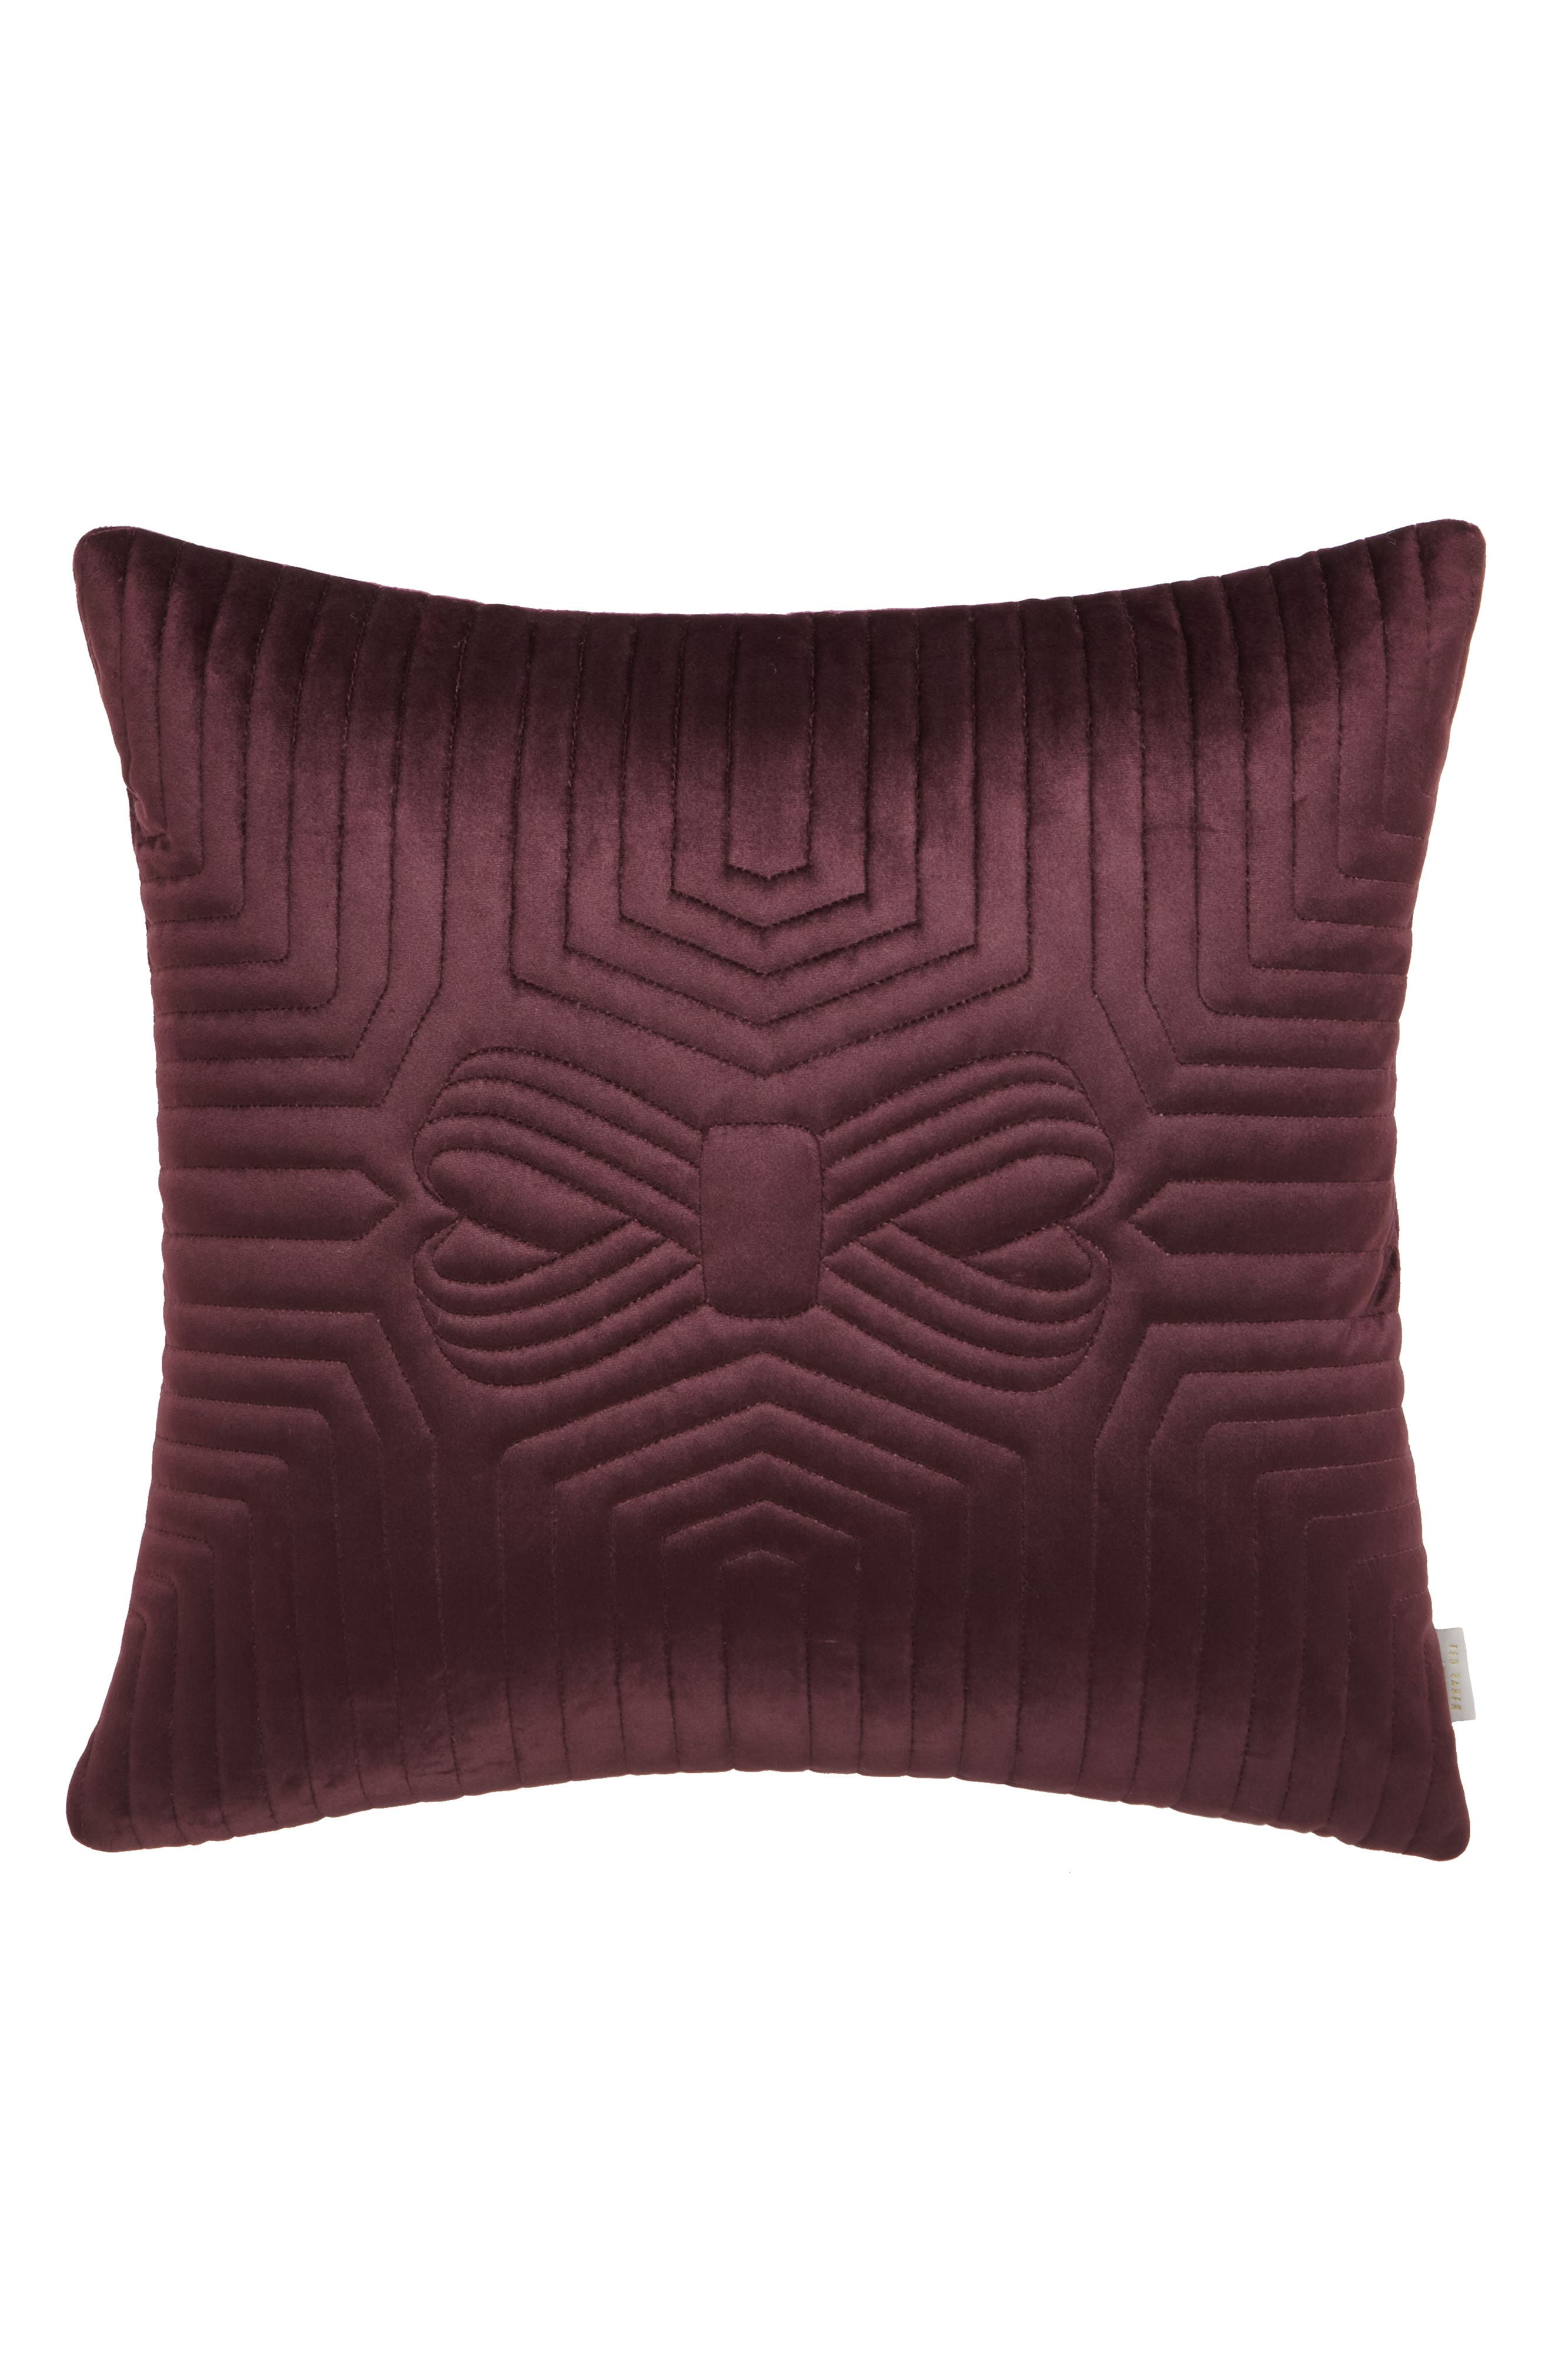 Quilted Velvet Accent Pillow,                         Main,                         color, Wine